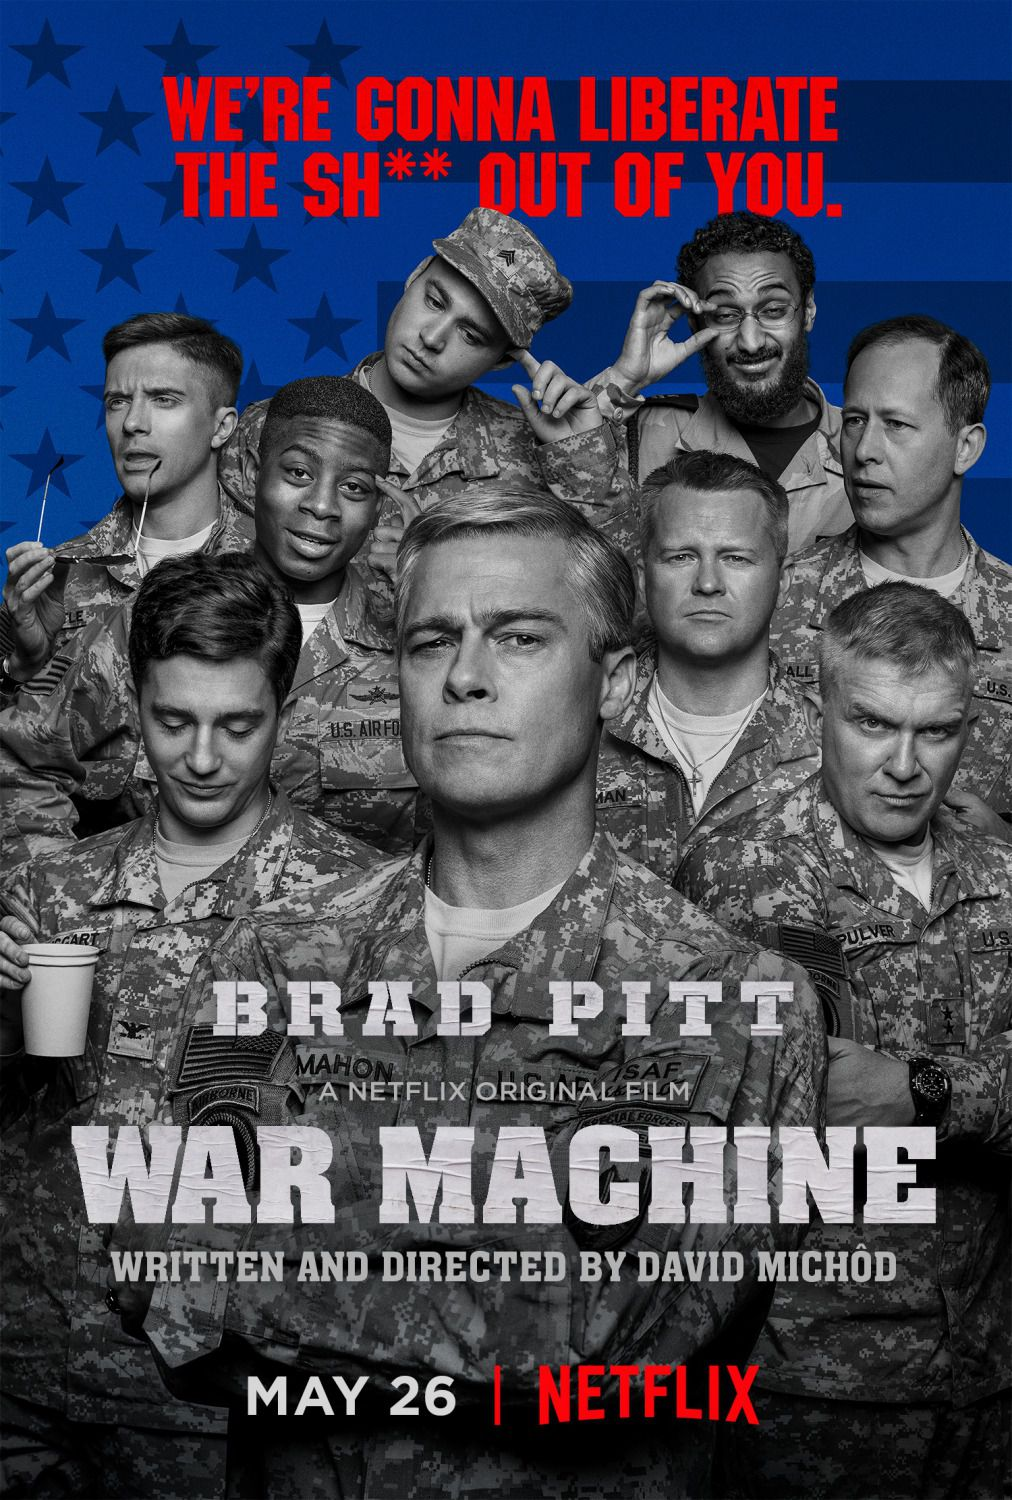 War Machine - We're gonna liberate the sh** out of You - Brad Pitt - Netlix